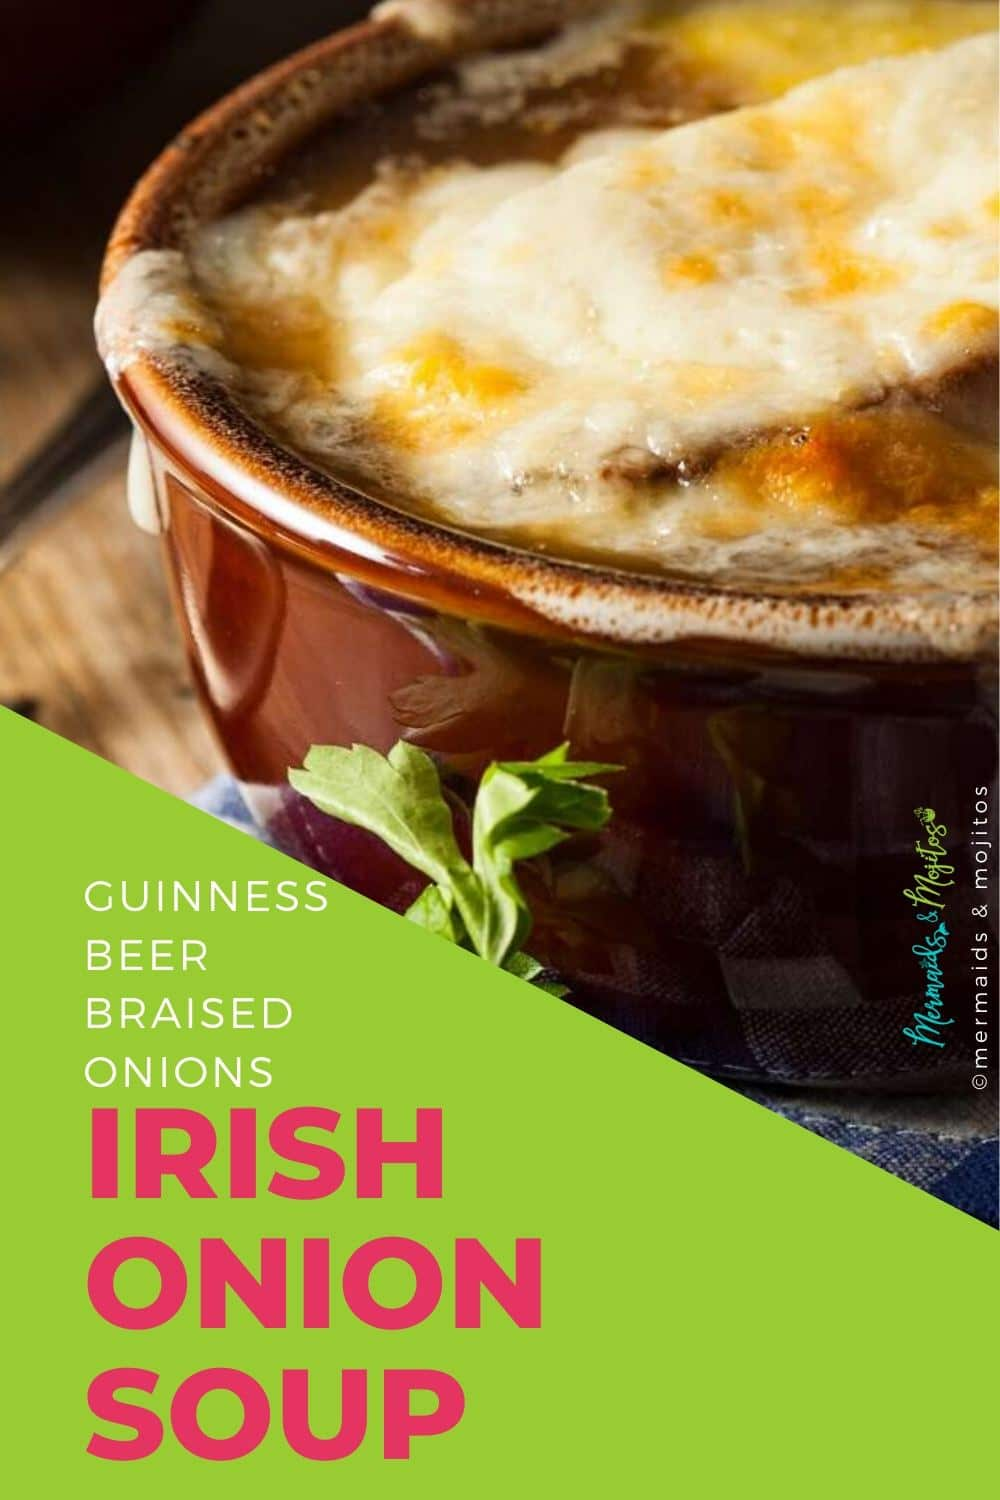 Irish Onion Soup is a riff on the classic French onion soup.  The onions are braised in Guinness Beer and add a rich caramelized flavor. via @mermaidsandmojitos